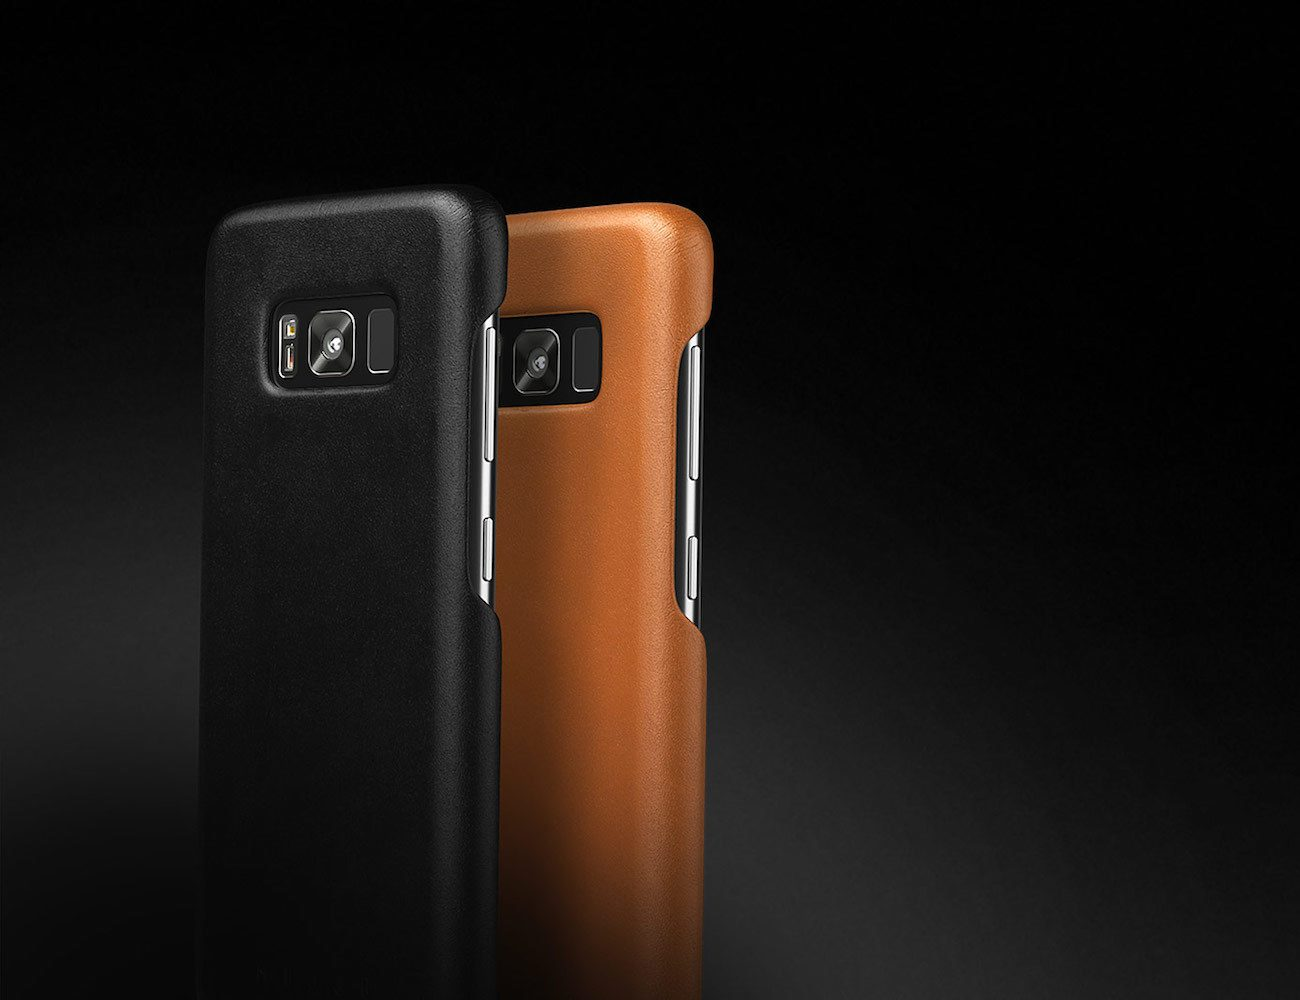 Samsung+Galaxy+S8+Premium+Leather+Case+By+MUJJO